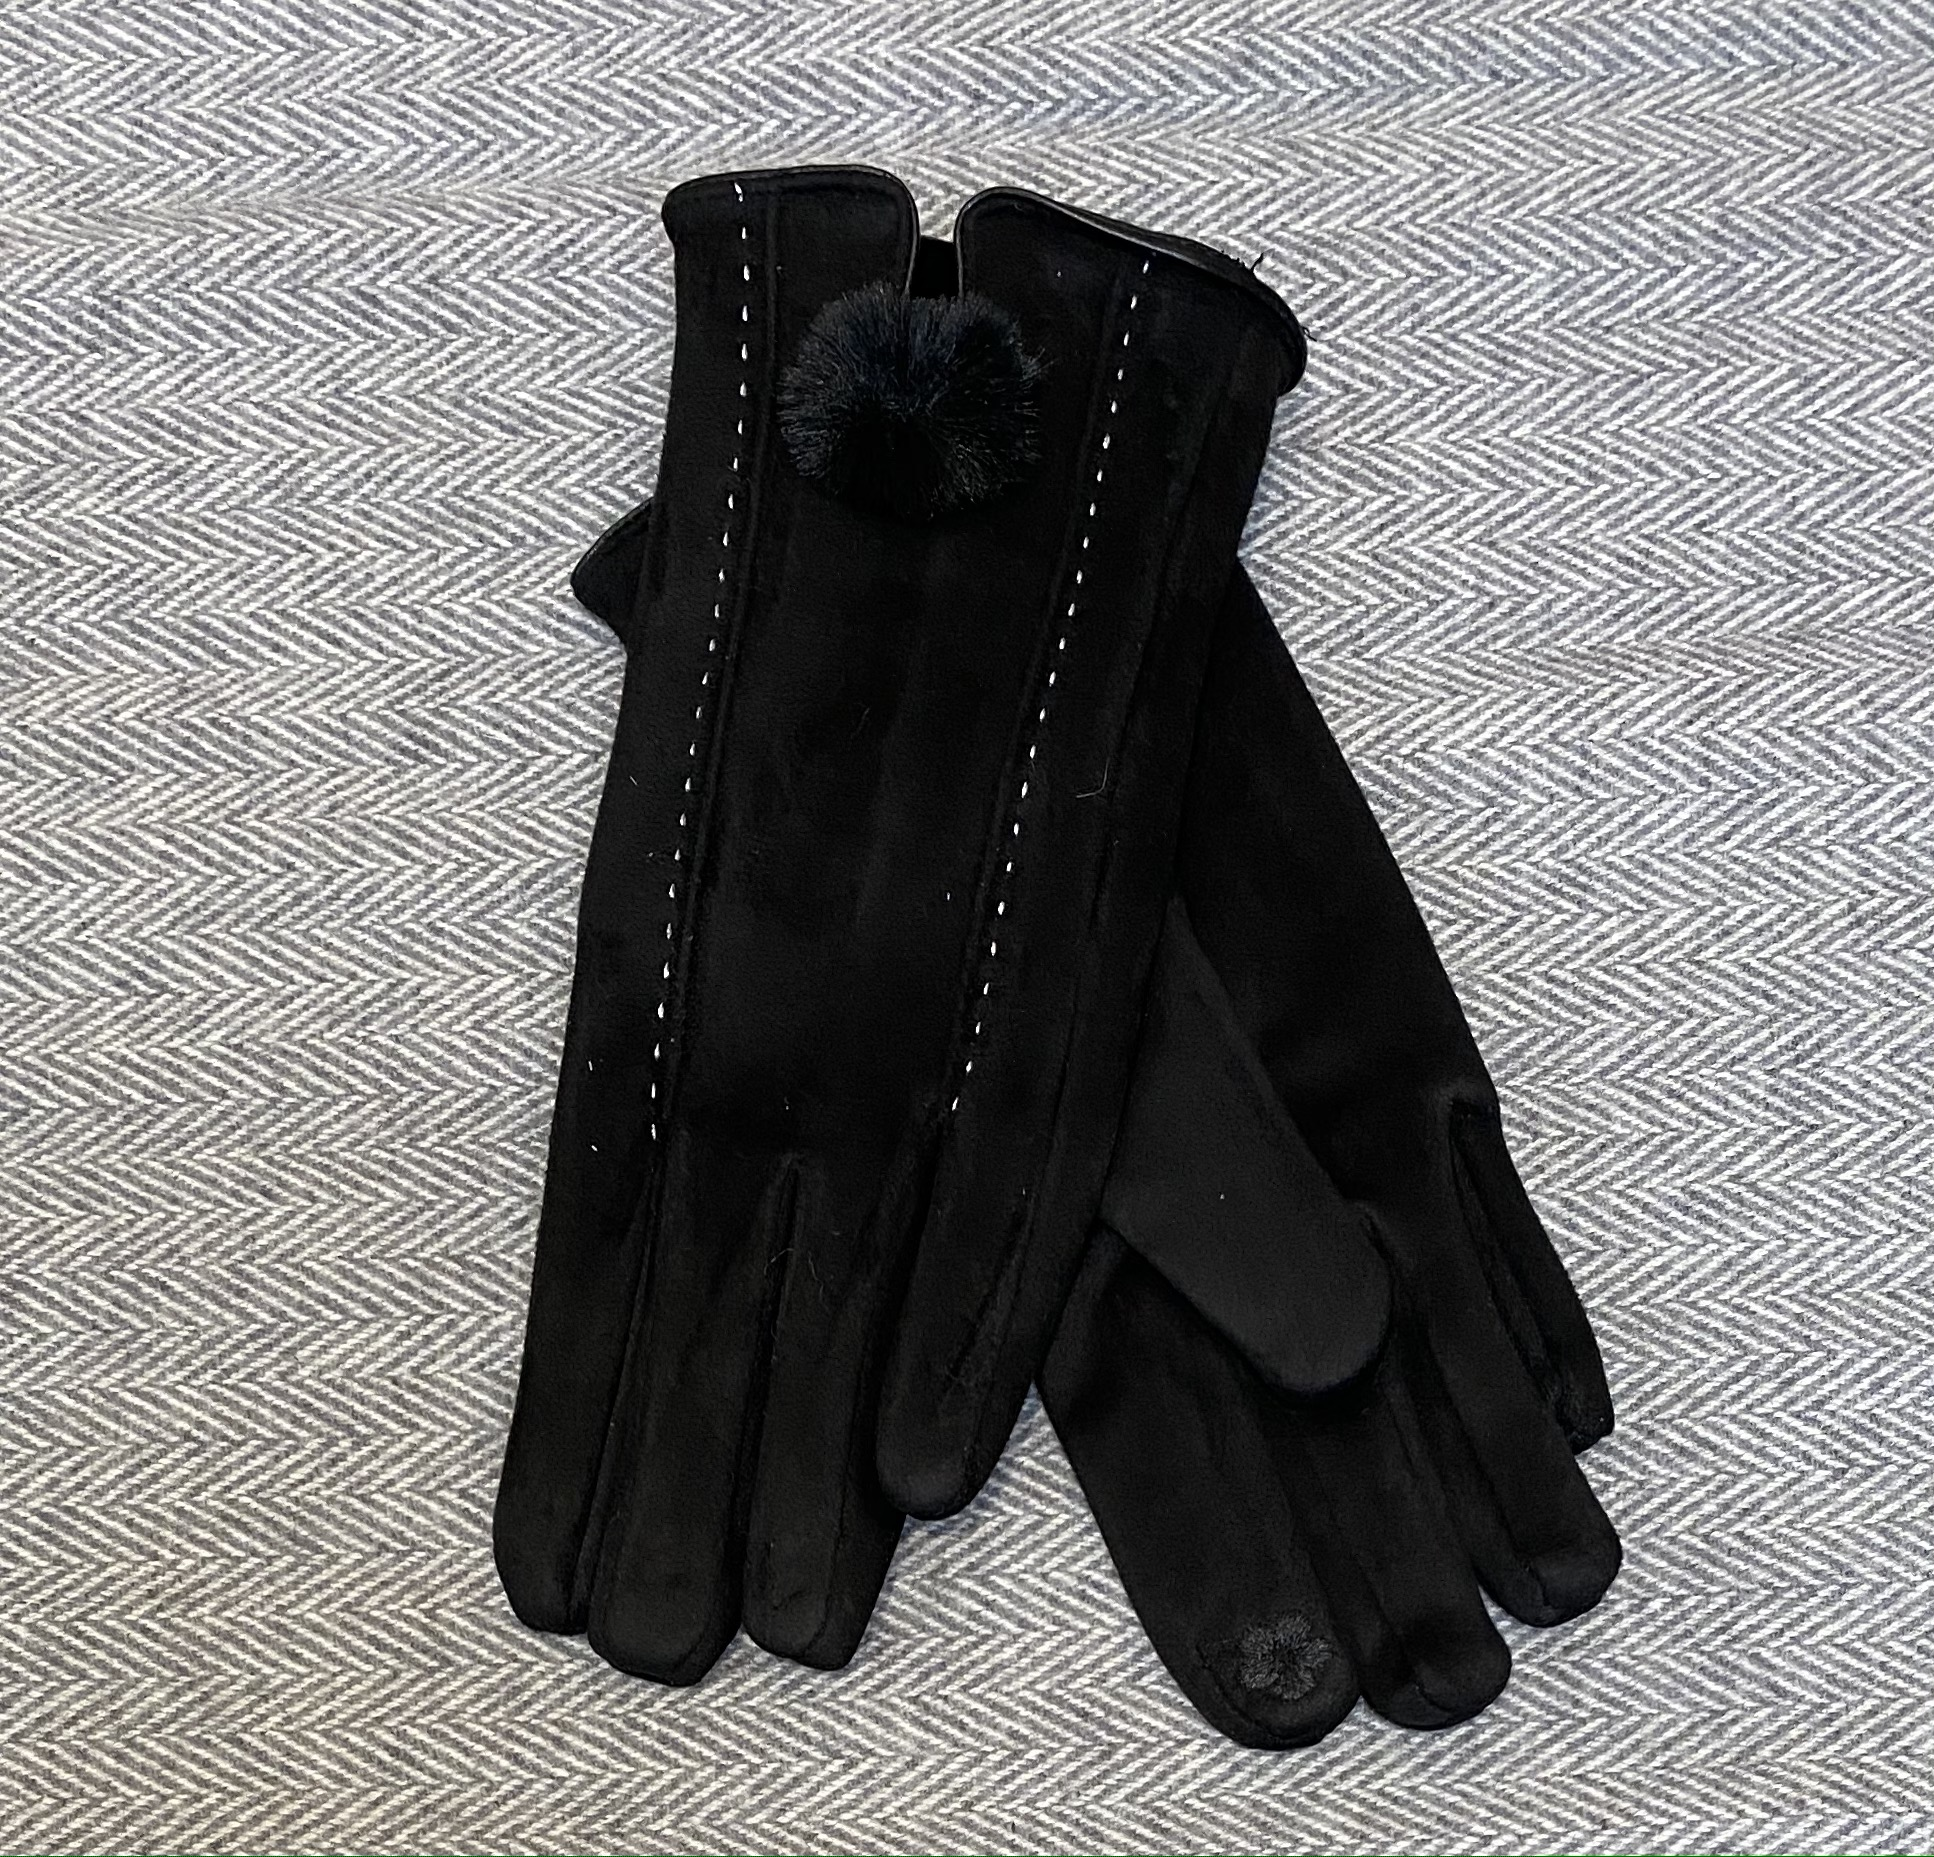 Franchetti Bond gloves - Available in 5 Colours